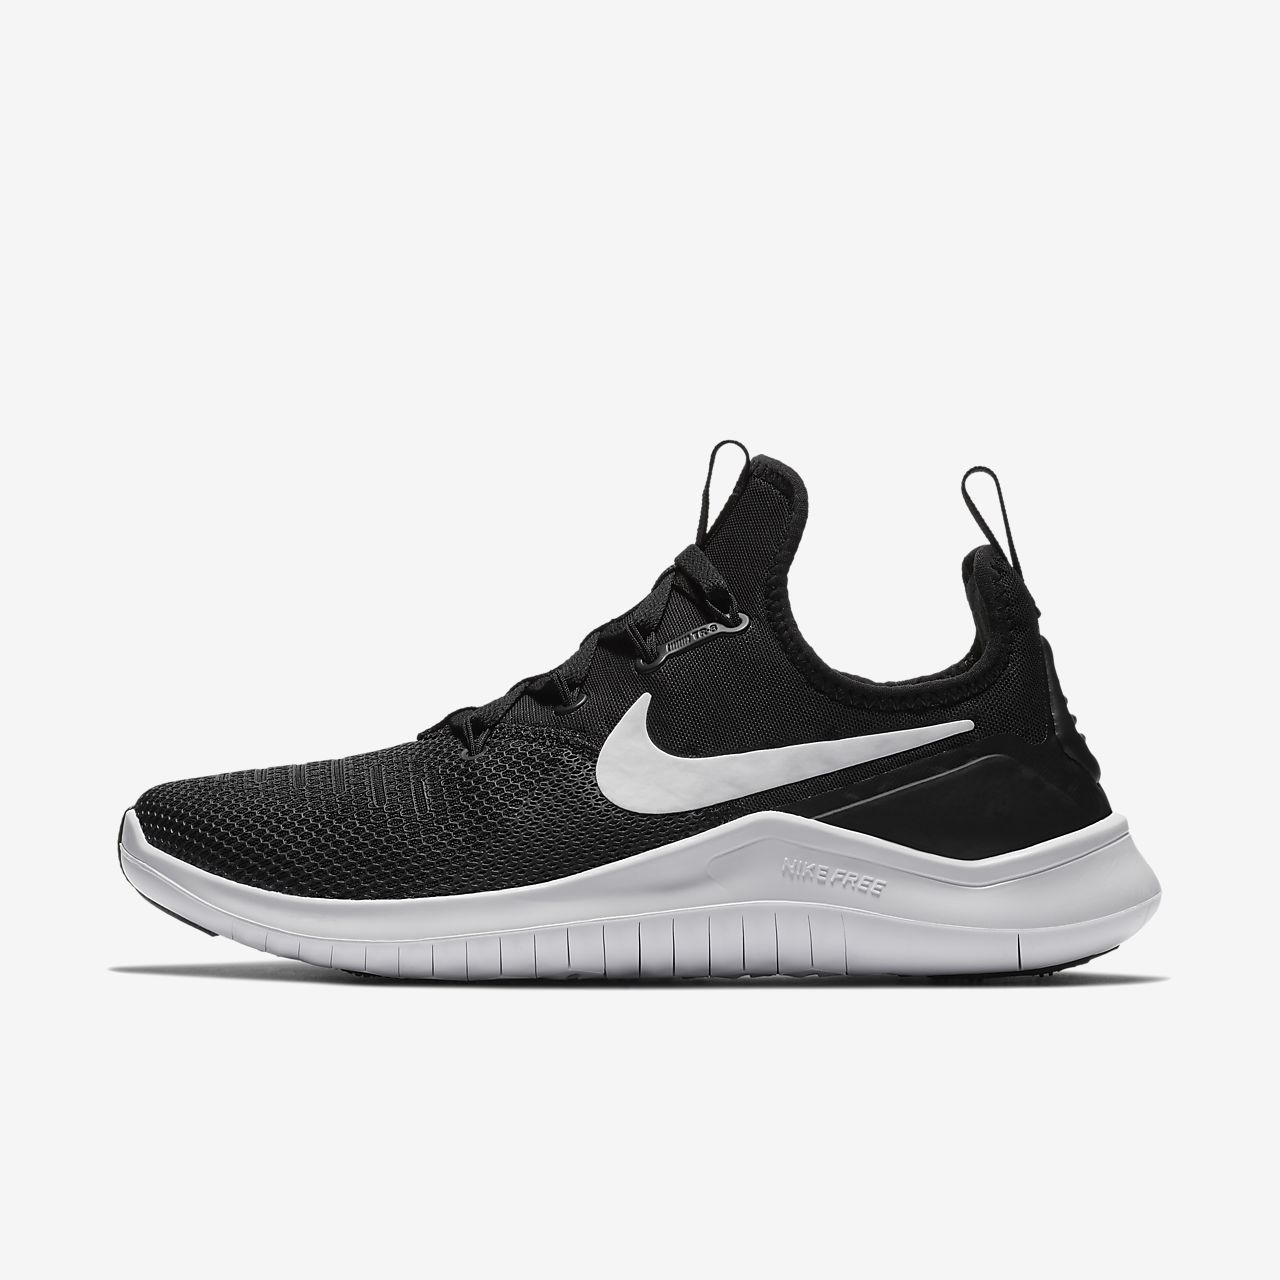 9ec3f811164ed0 Nike Free TR8 Women s Gym HIIT Cross Training Shoe. Nike.com NZ